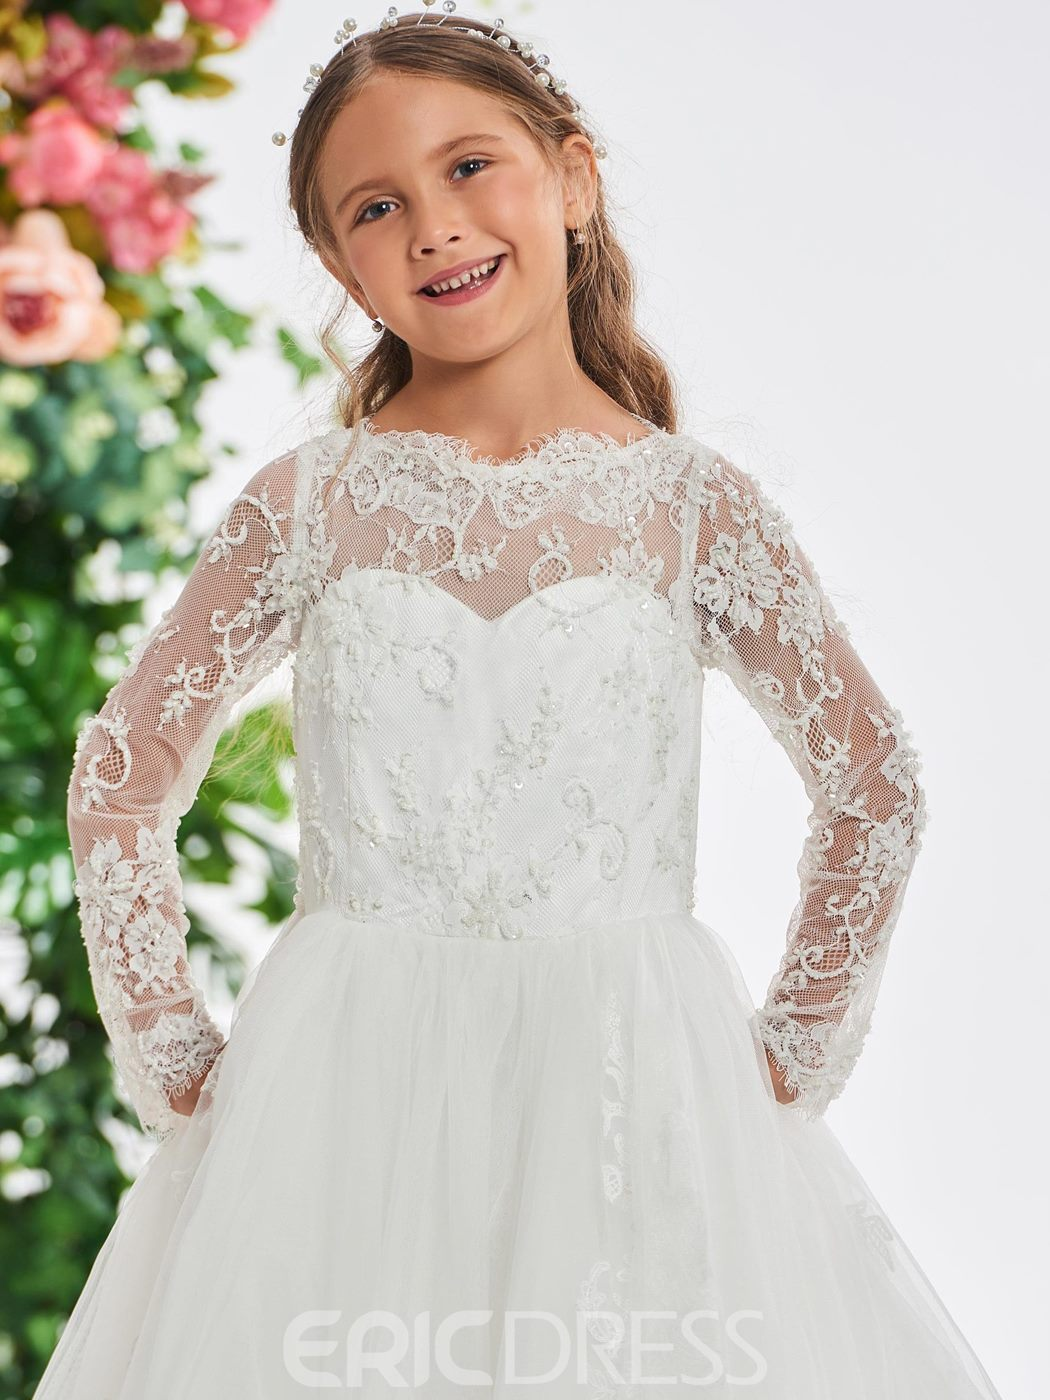 Ericdress Lace Long Sleeves A-Line Flower Girl Dress